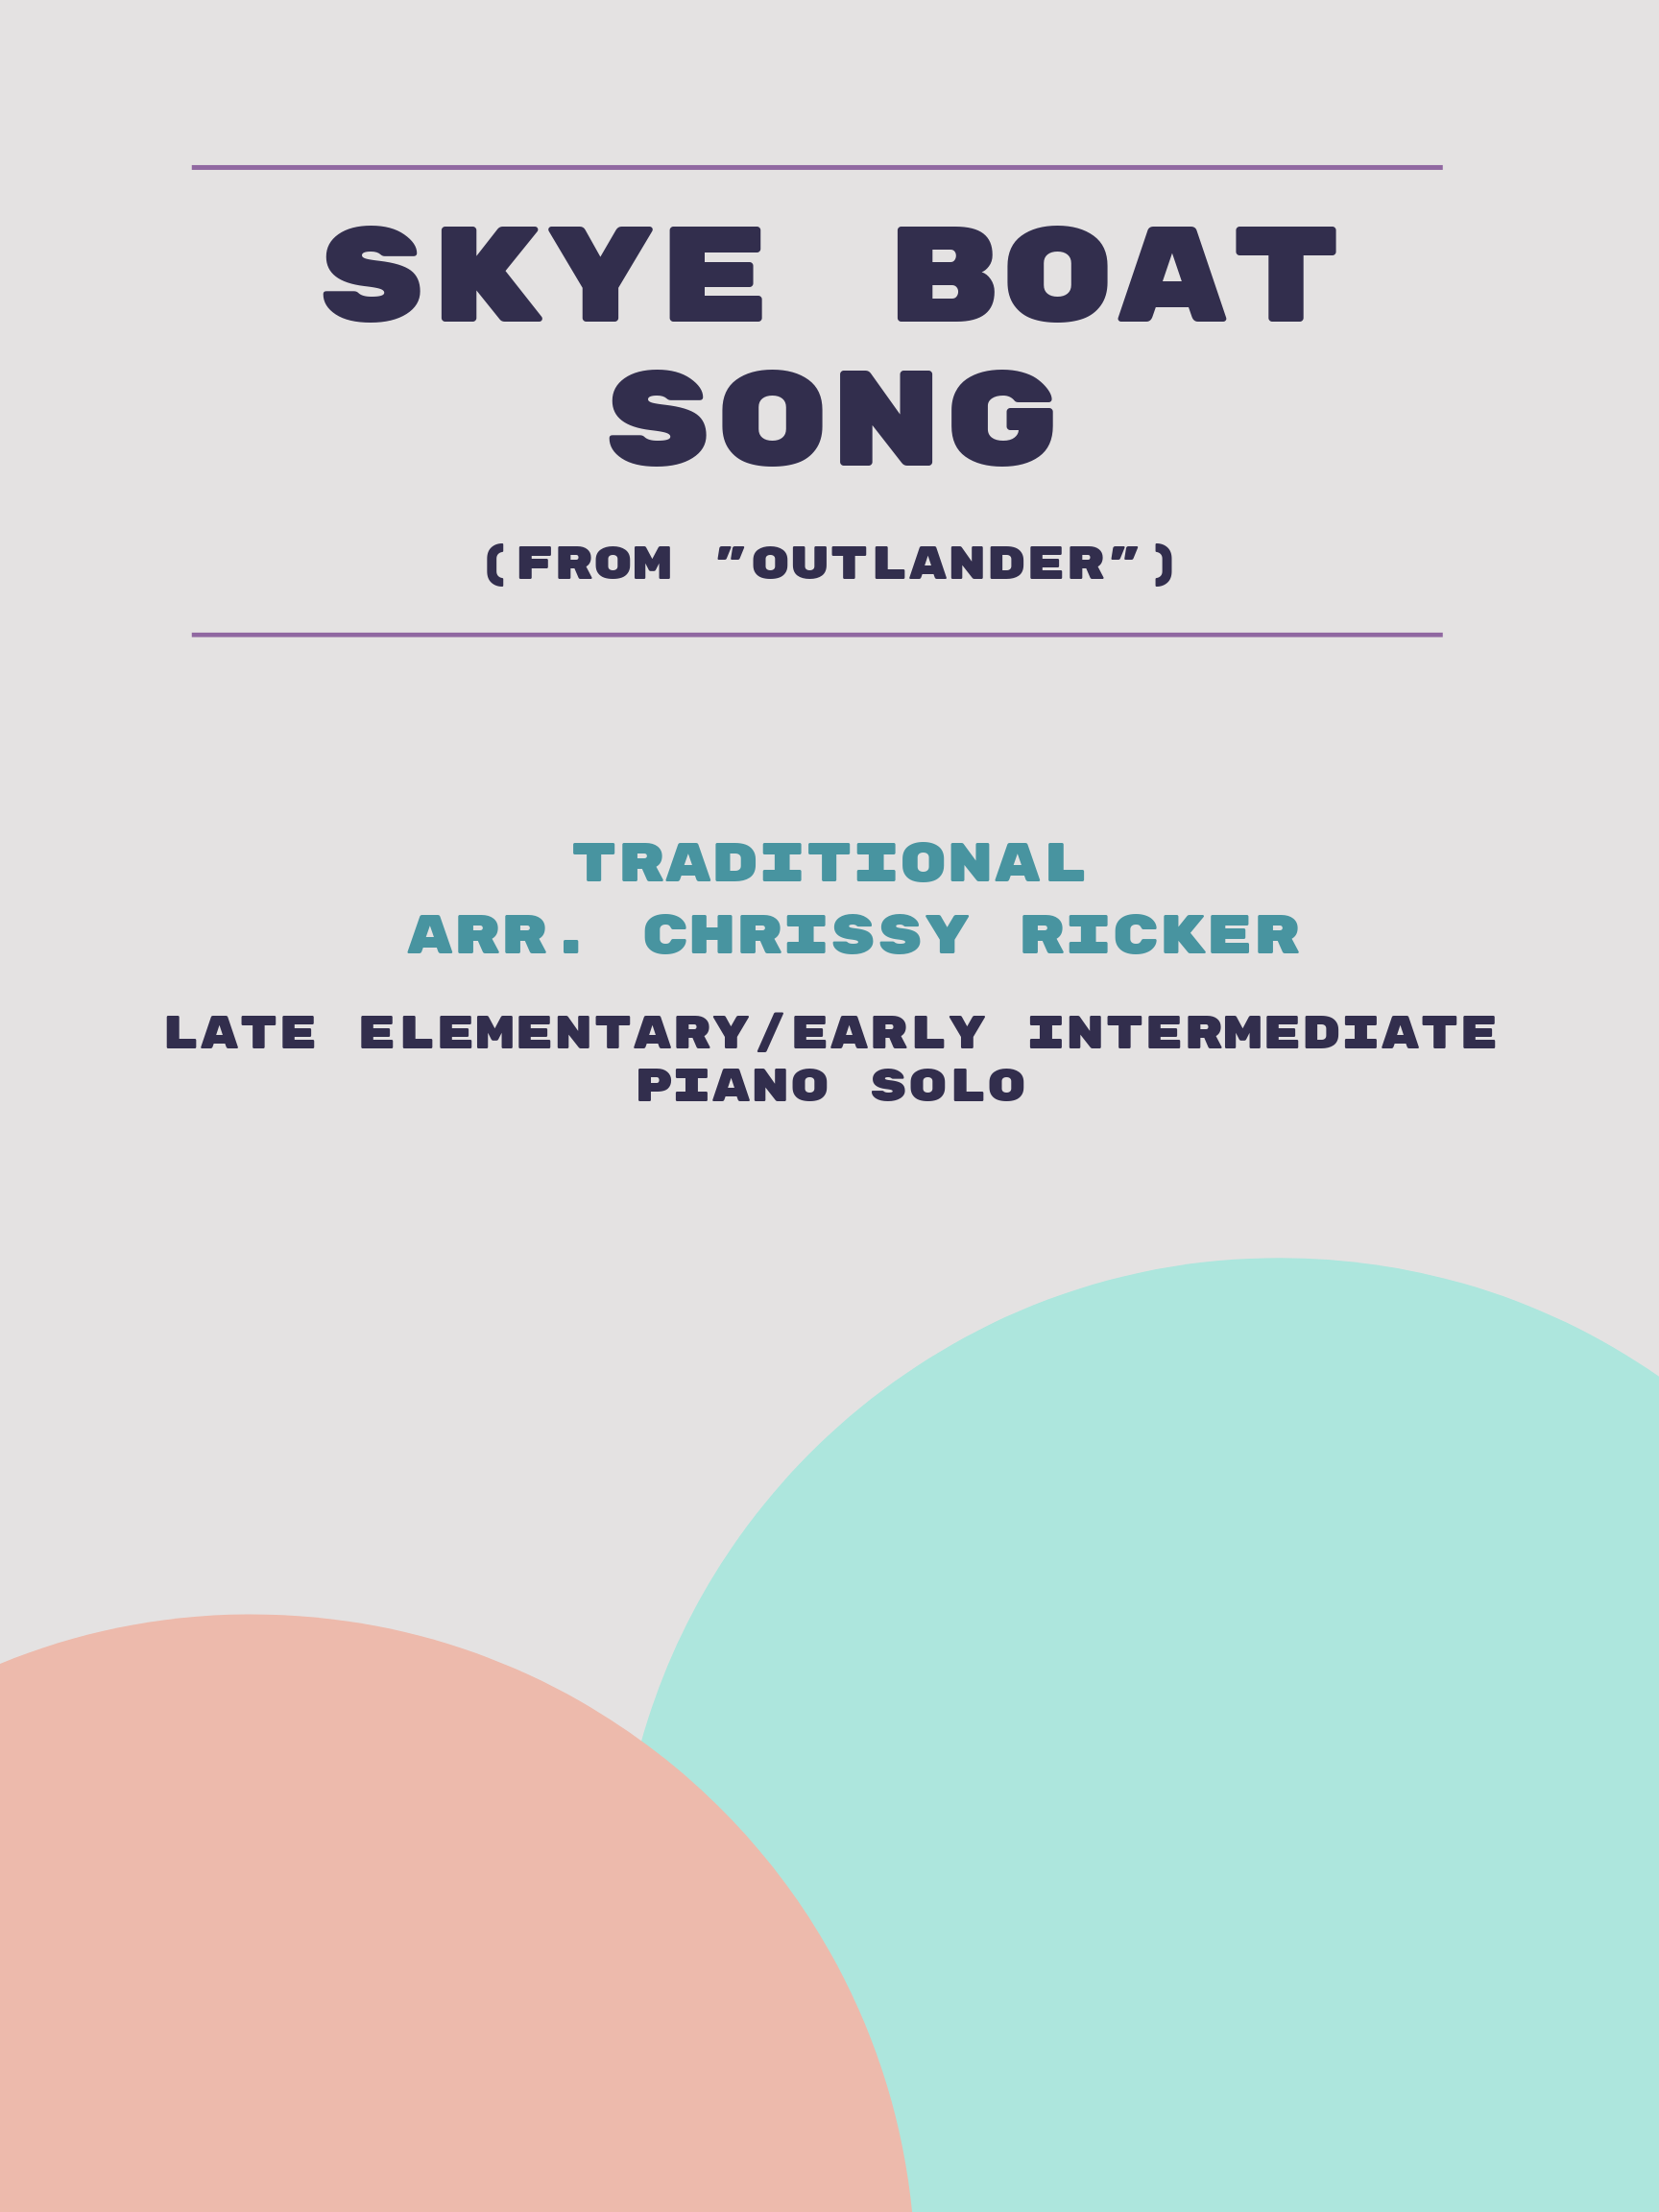 Skye Boat Song by Traditional